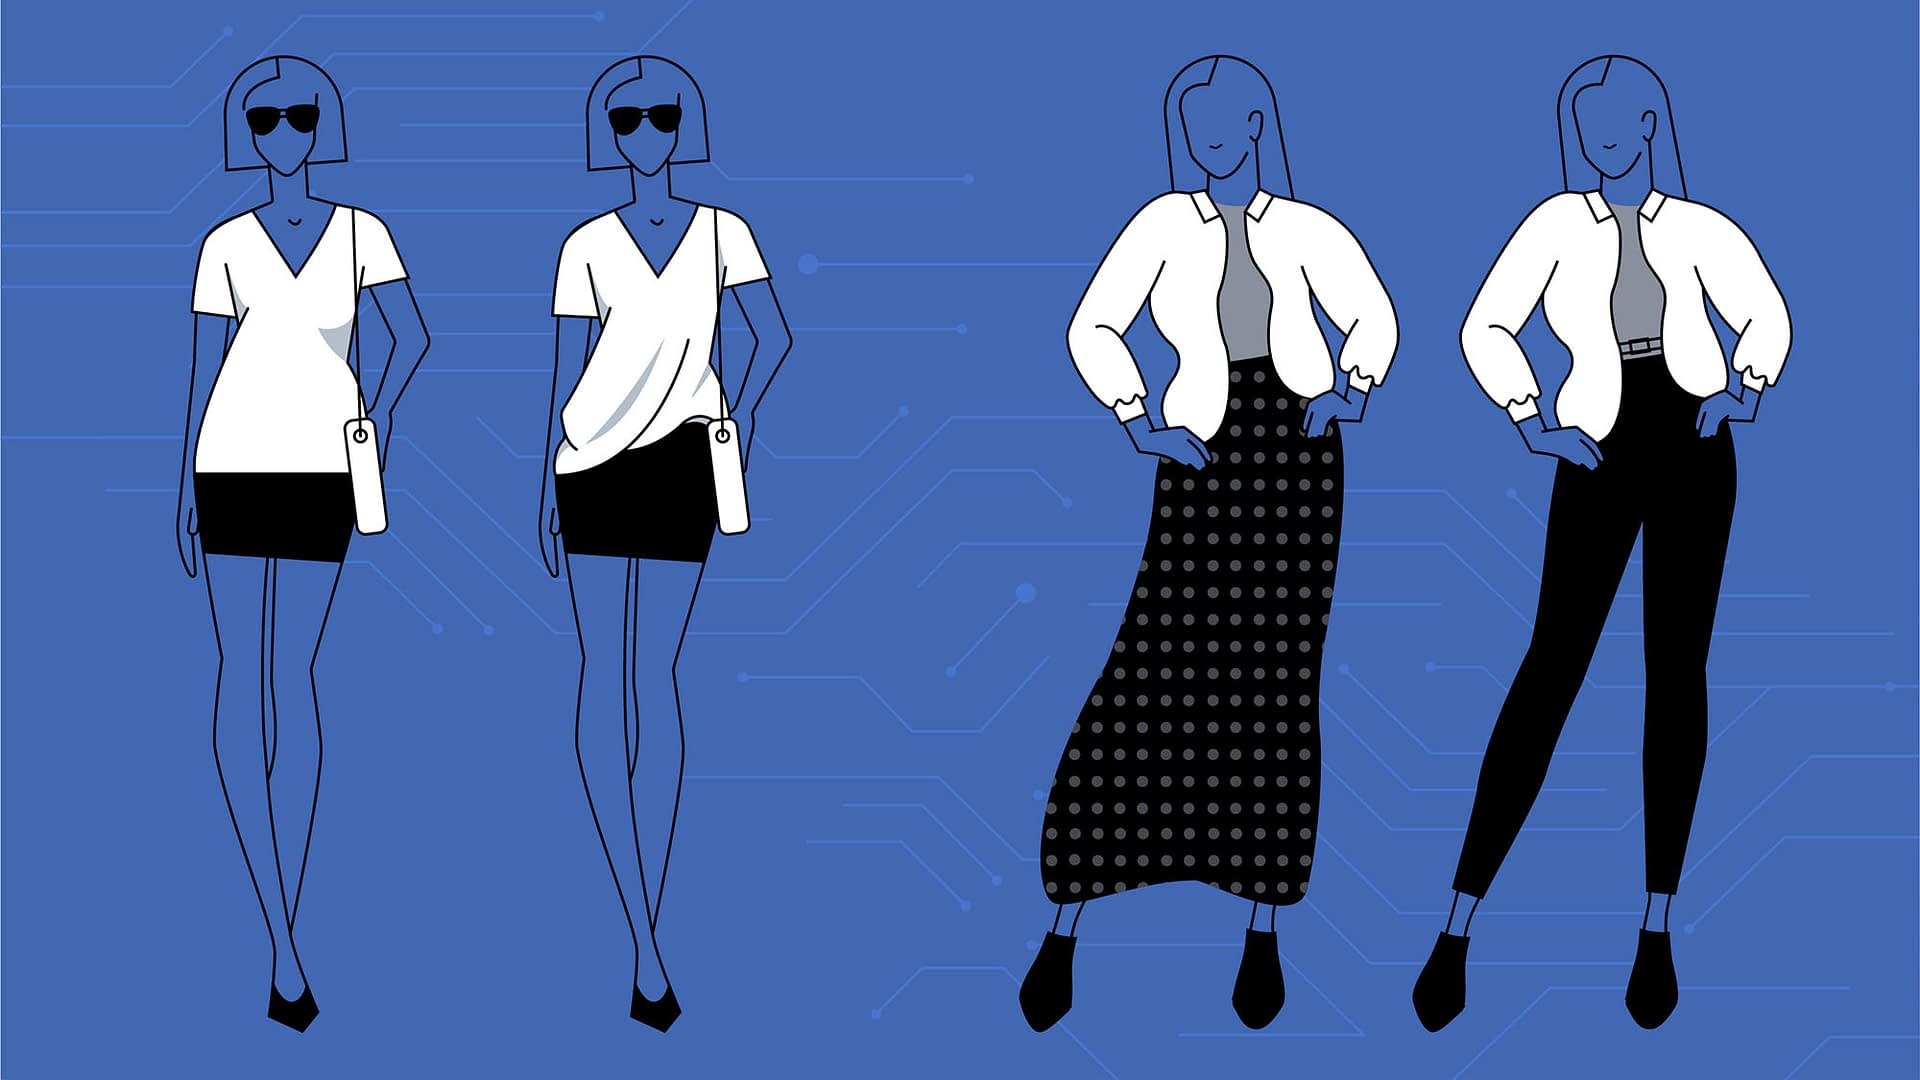 How is Facebook helping people in augmenting their fashion knowledge?